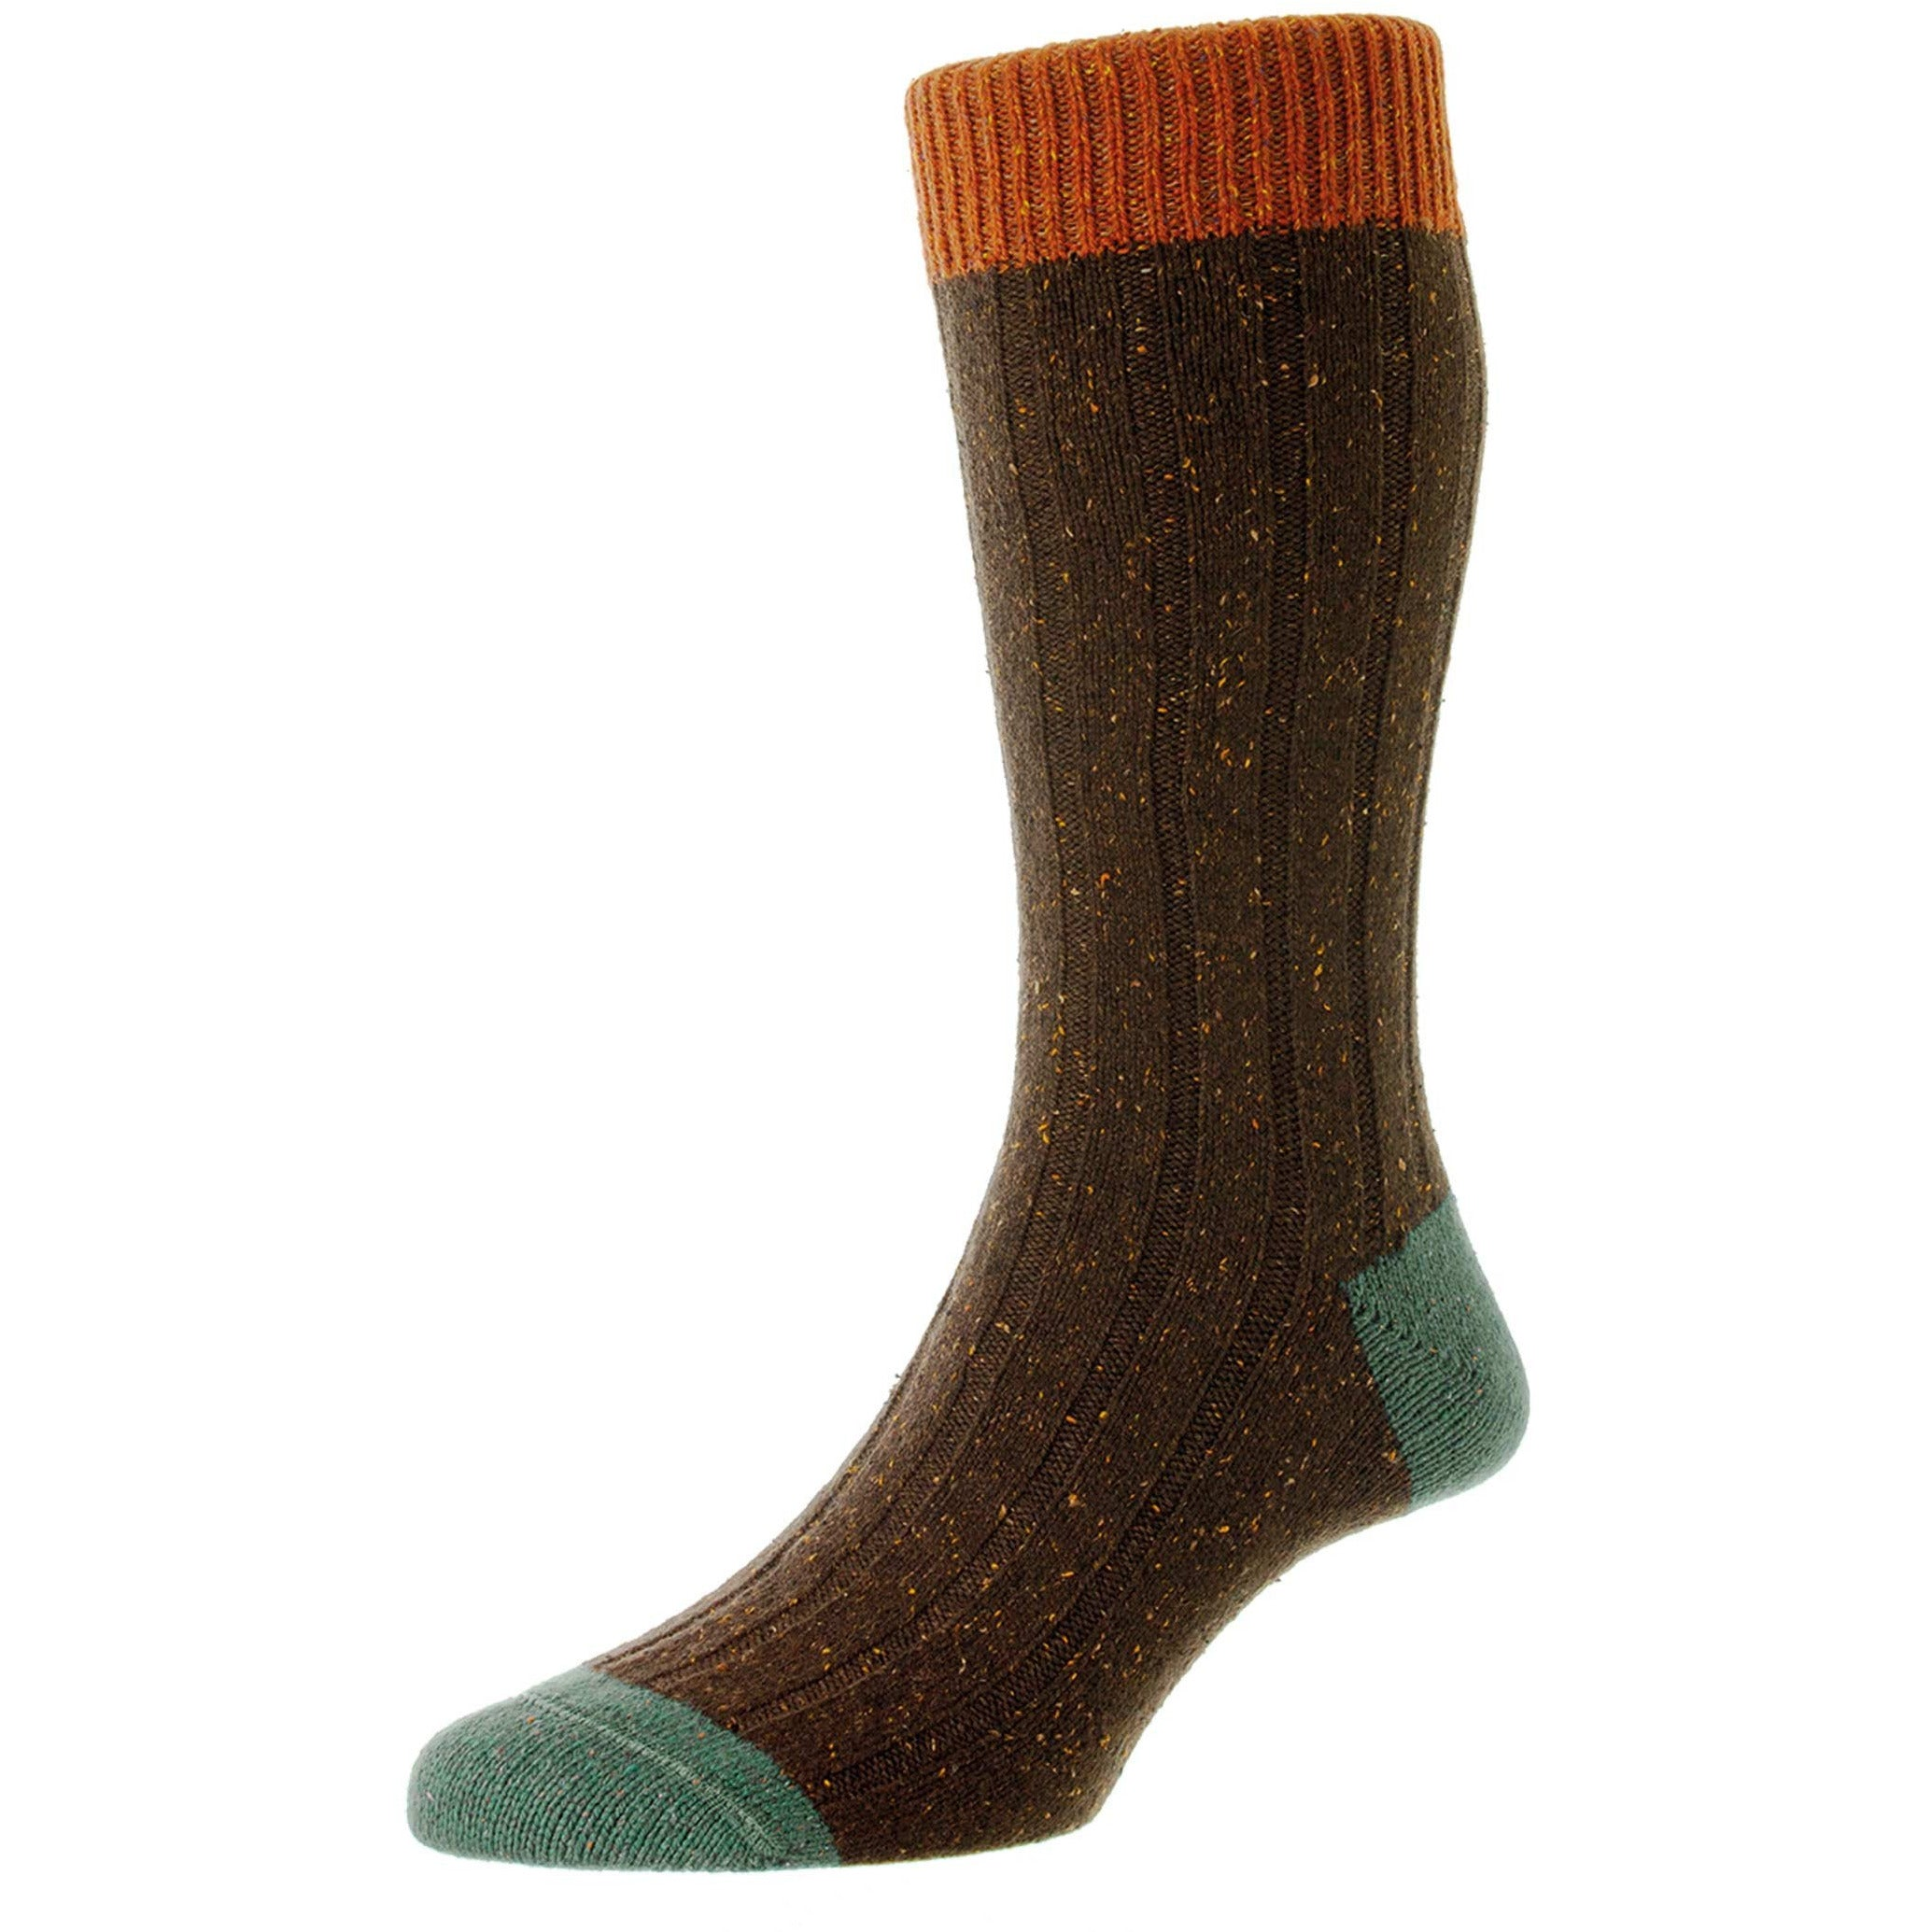 Thornham 6 x 2 Rib with Contrasts Heavy Wool Socks